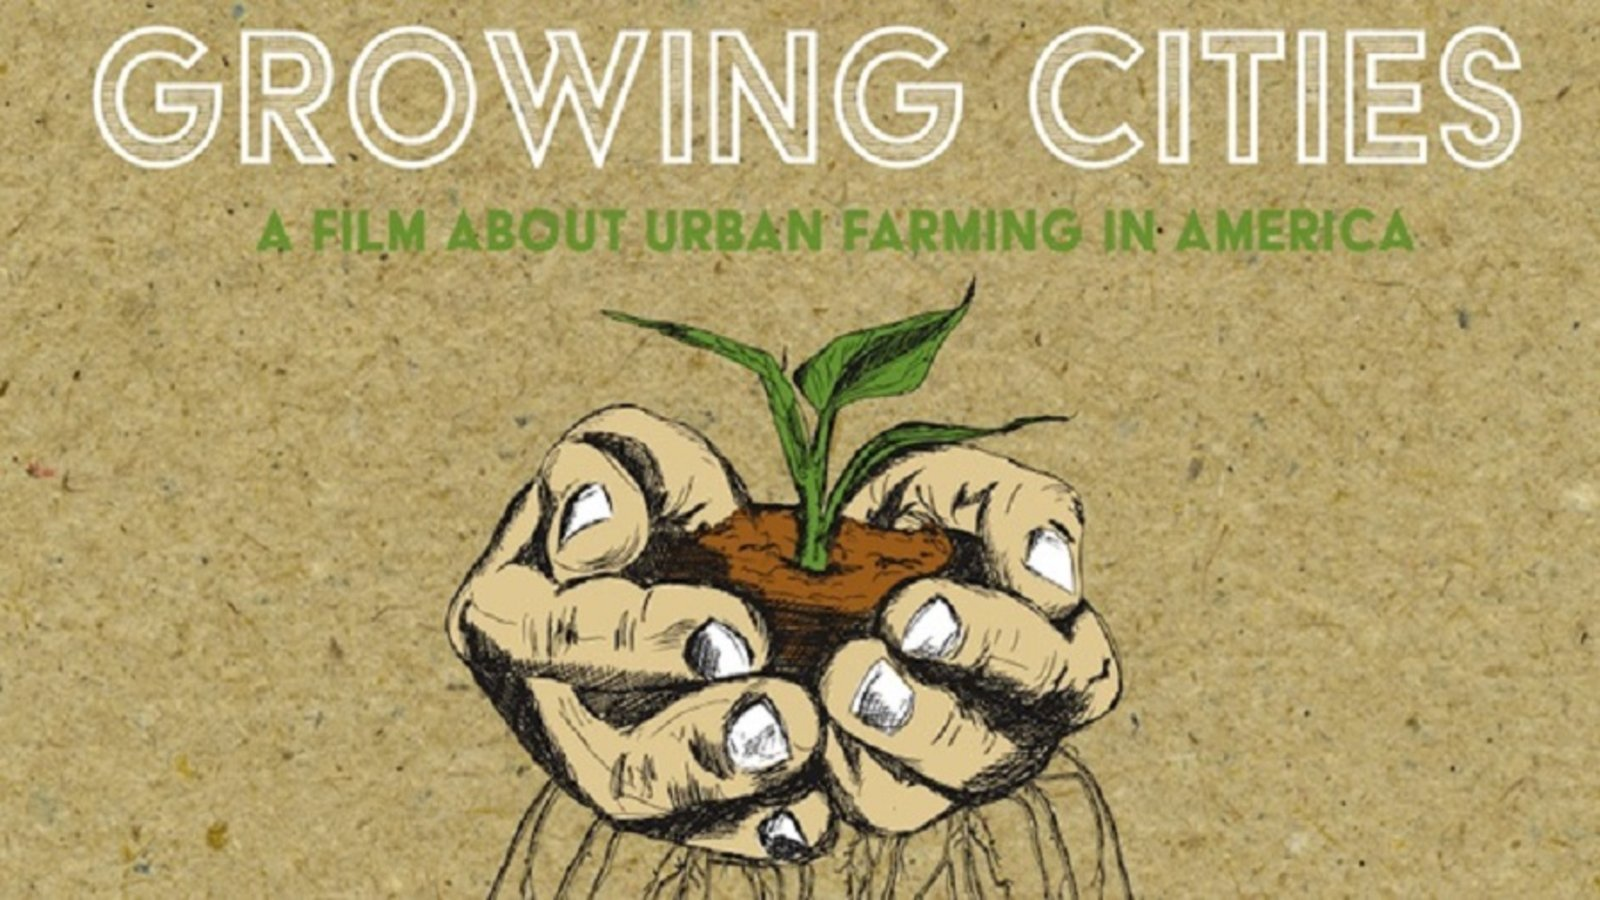 Growing Cities - Examining the Role of Urban Farming in America